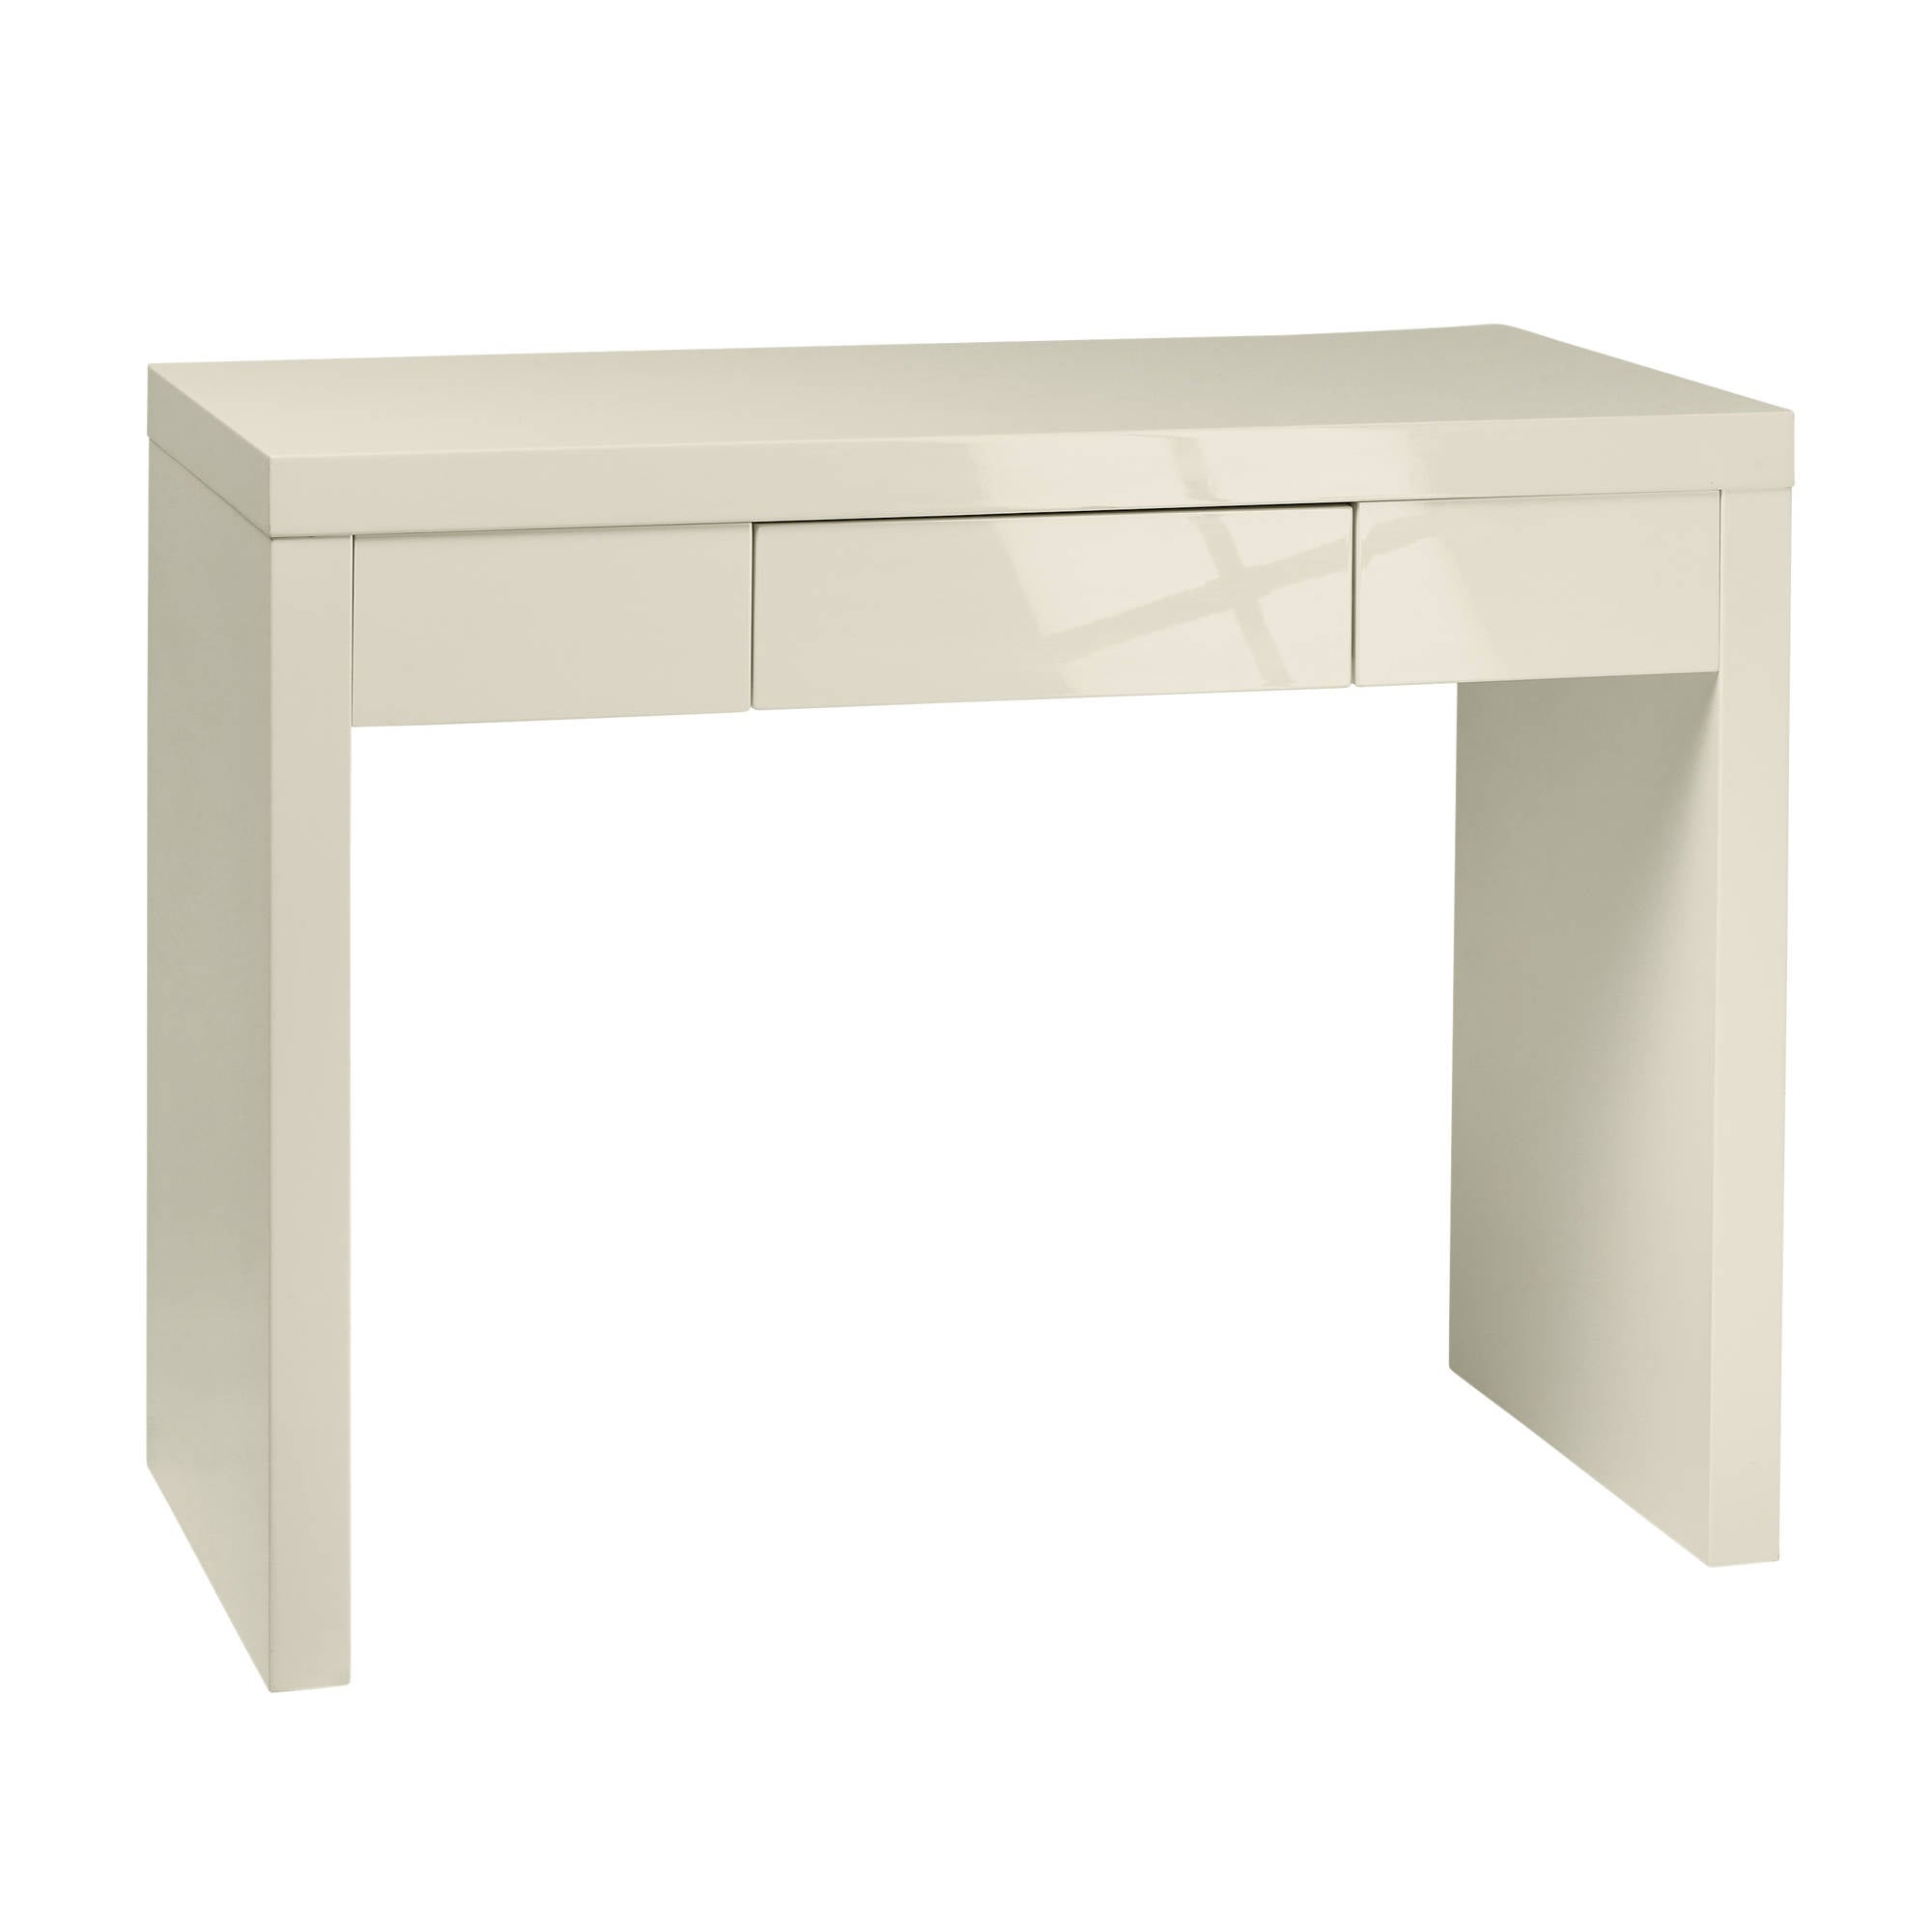 Cuba Console Table in Cream - Ezzo